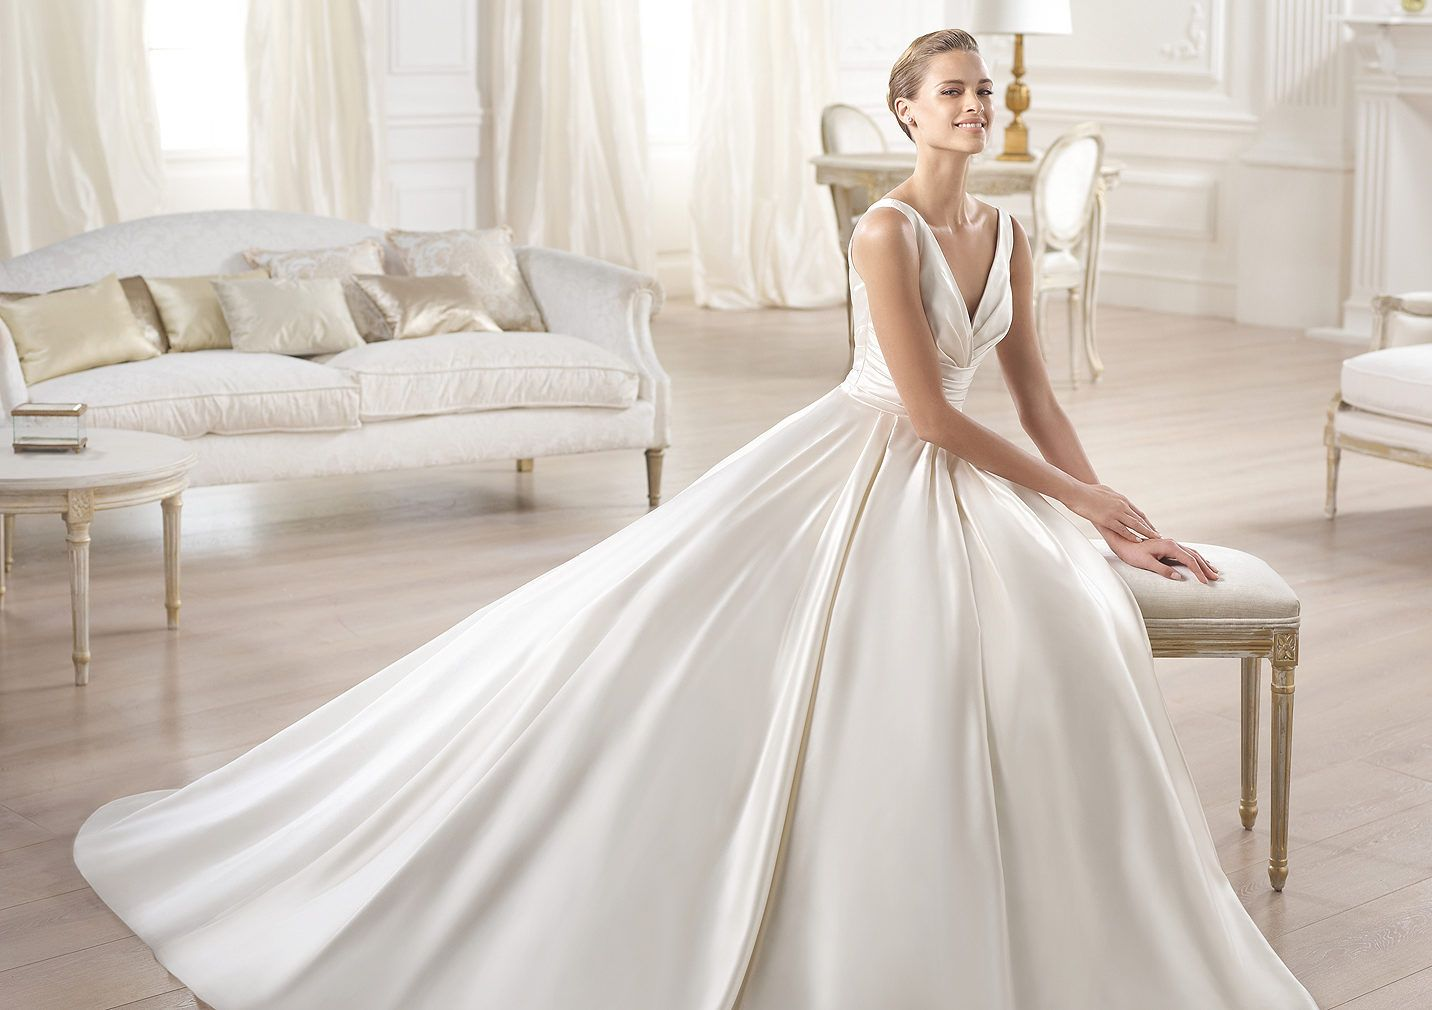 Pronovias Presents The Stunning 2018 Preview Collections: Pronovias Presents The Ocumo Wedding Dress. Collection